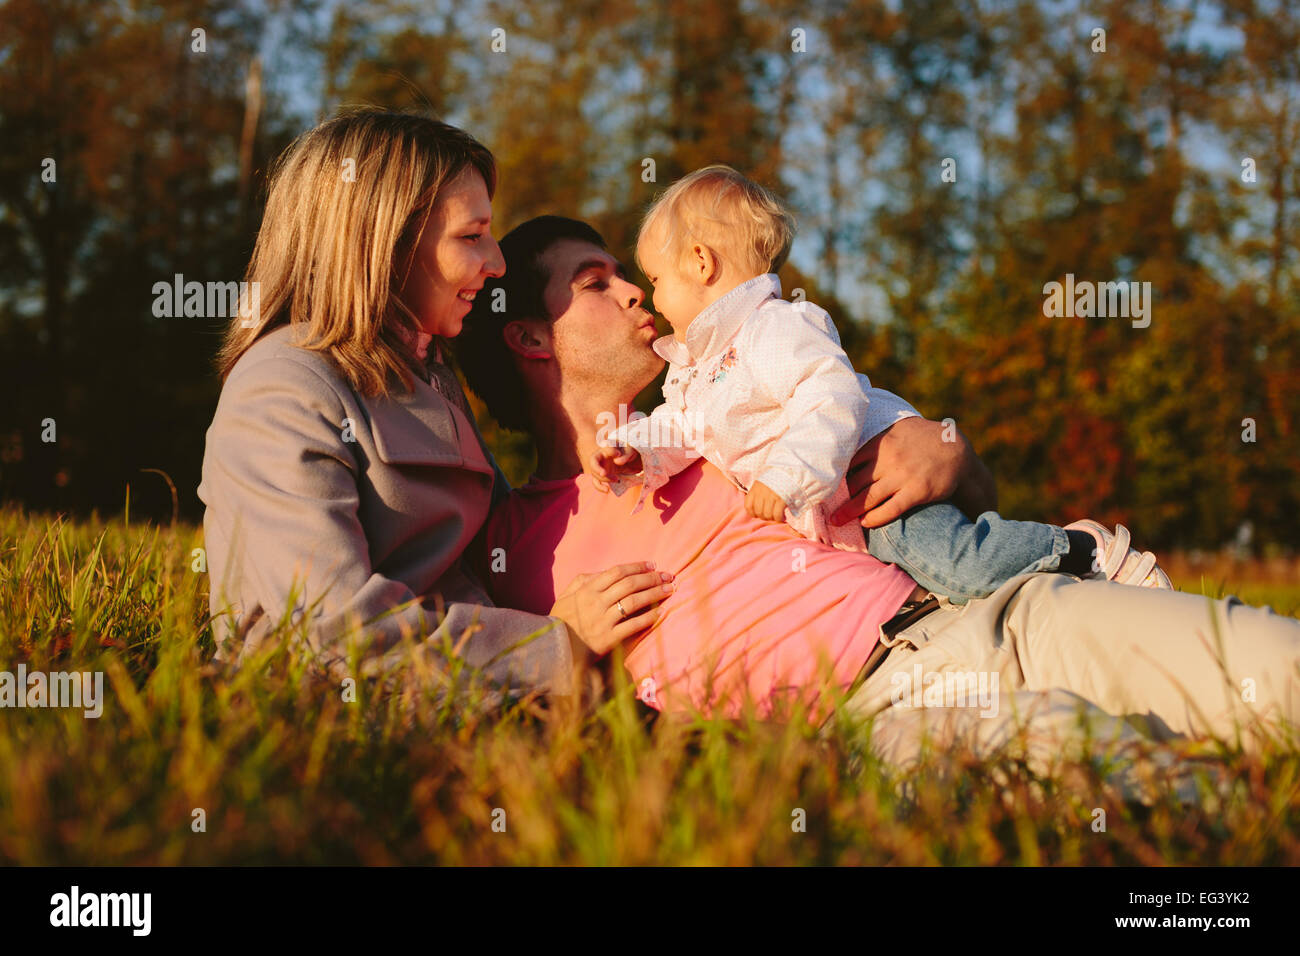 Family on the meadow - Stock Image